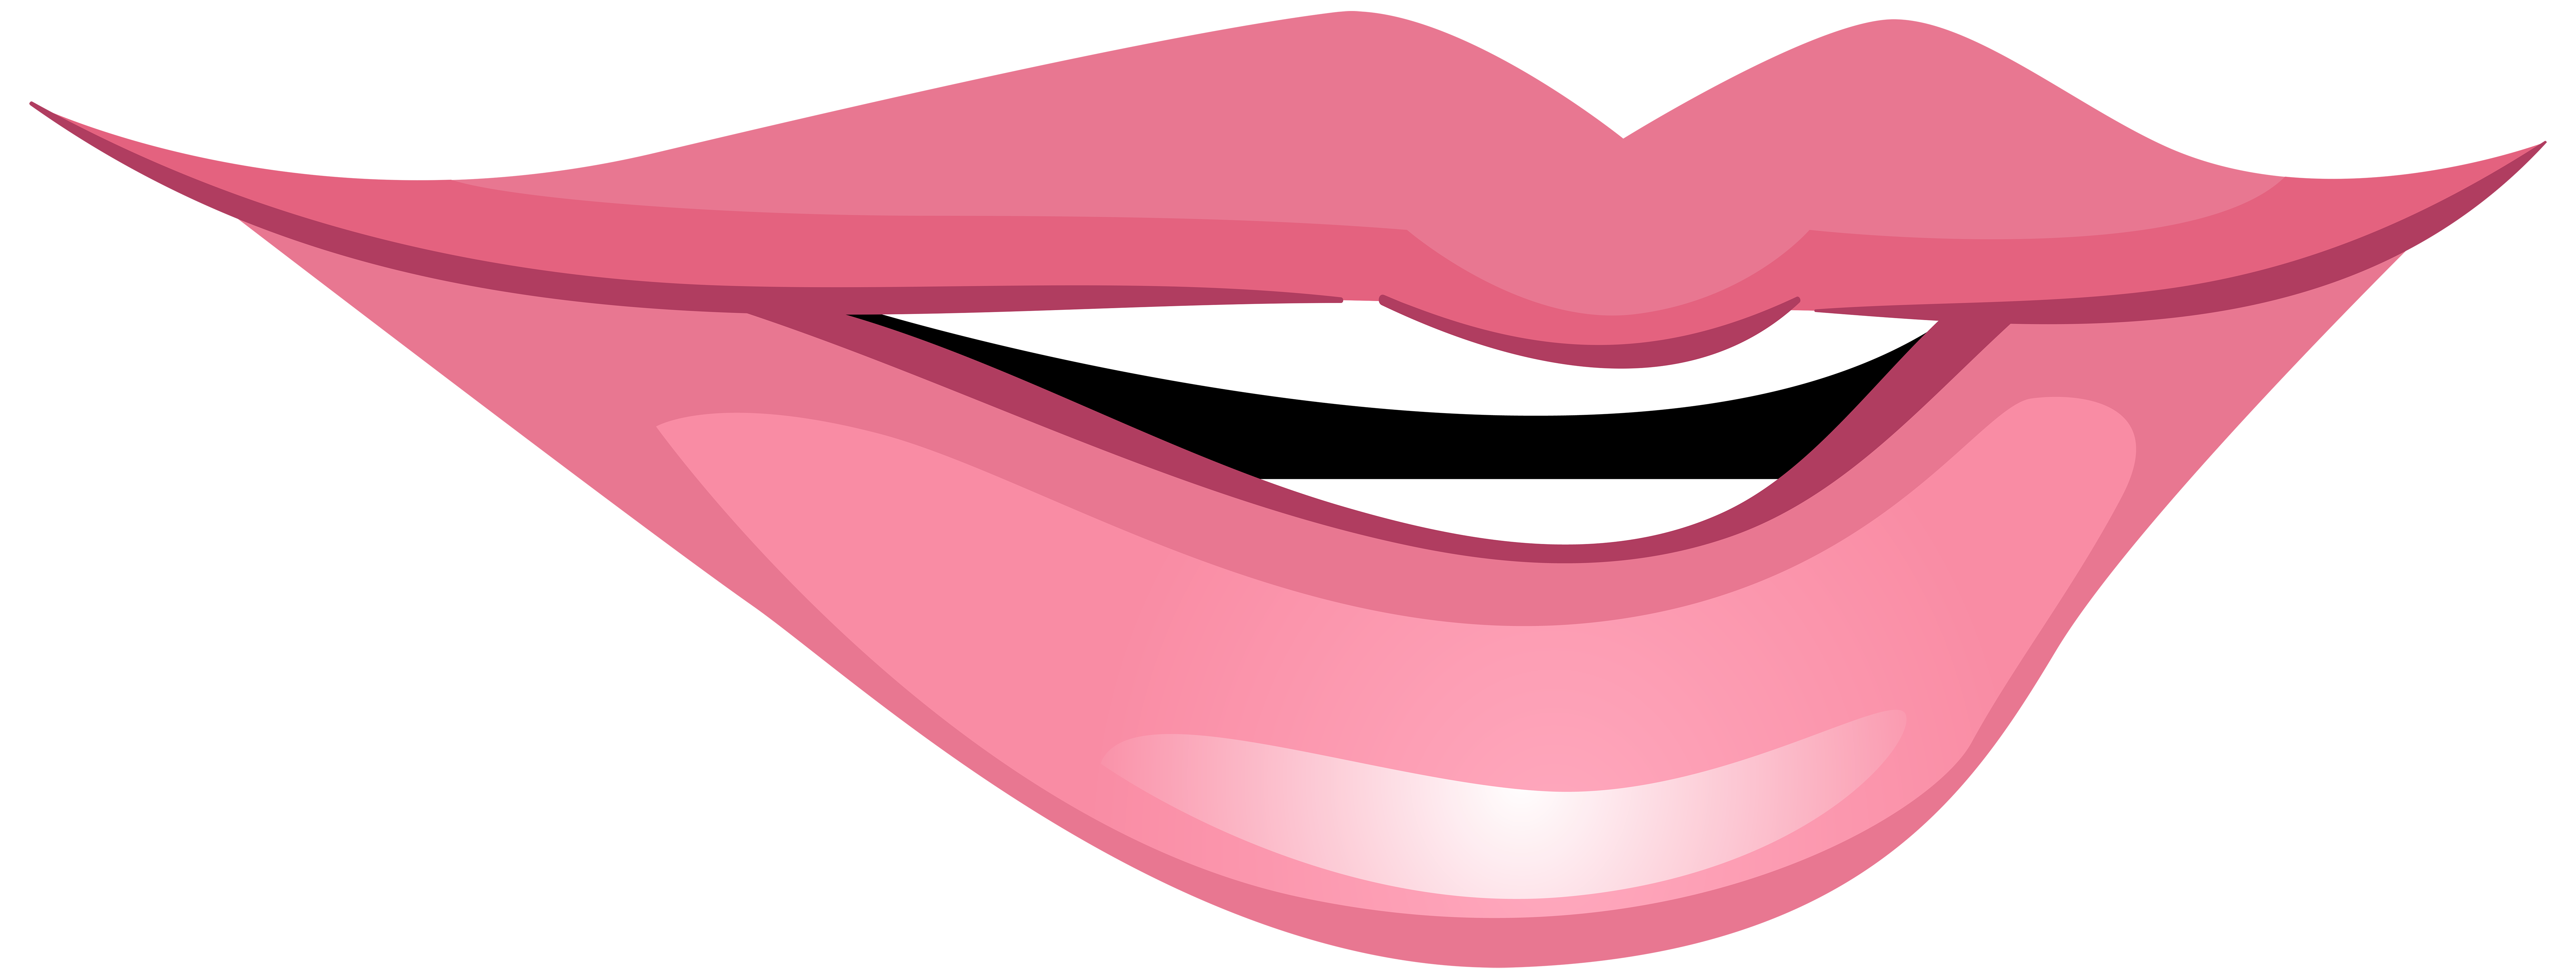 Mouth clipart smile line. Pink smiling png clip